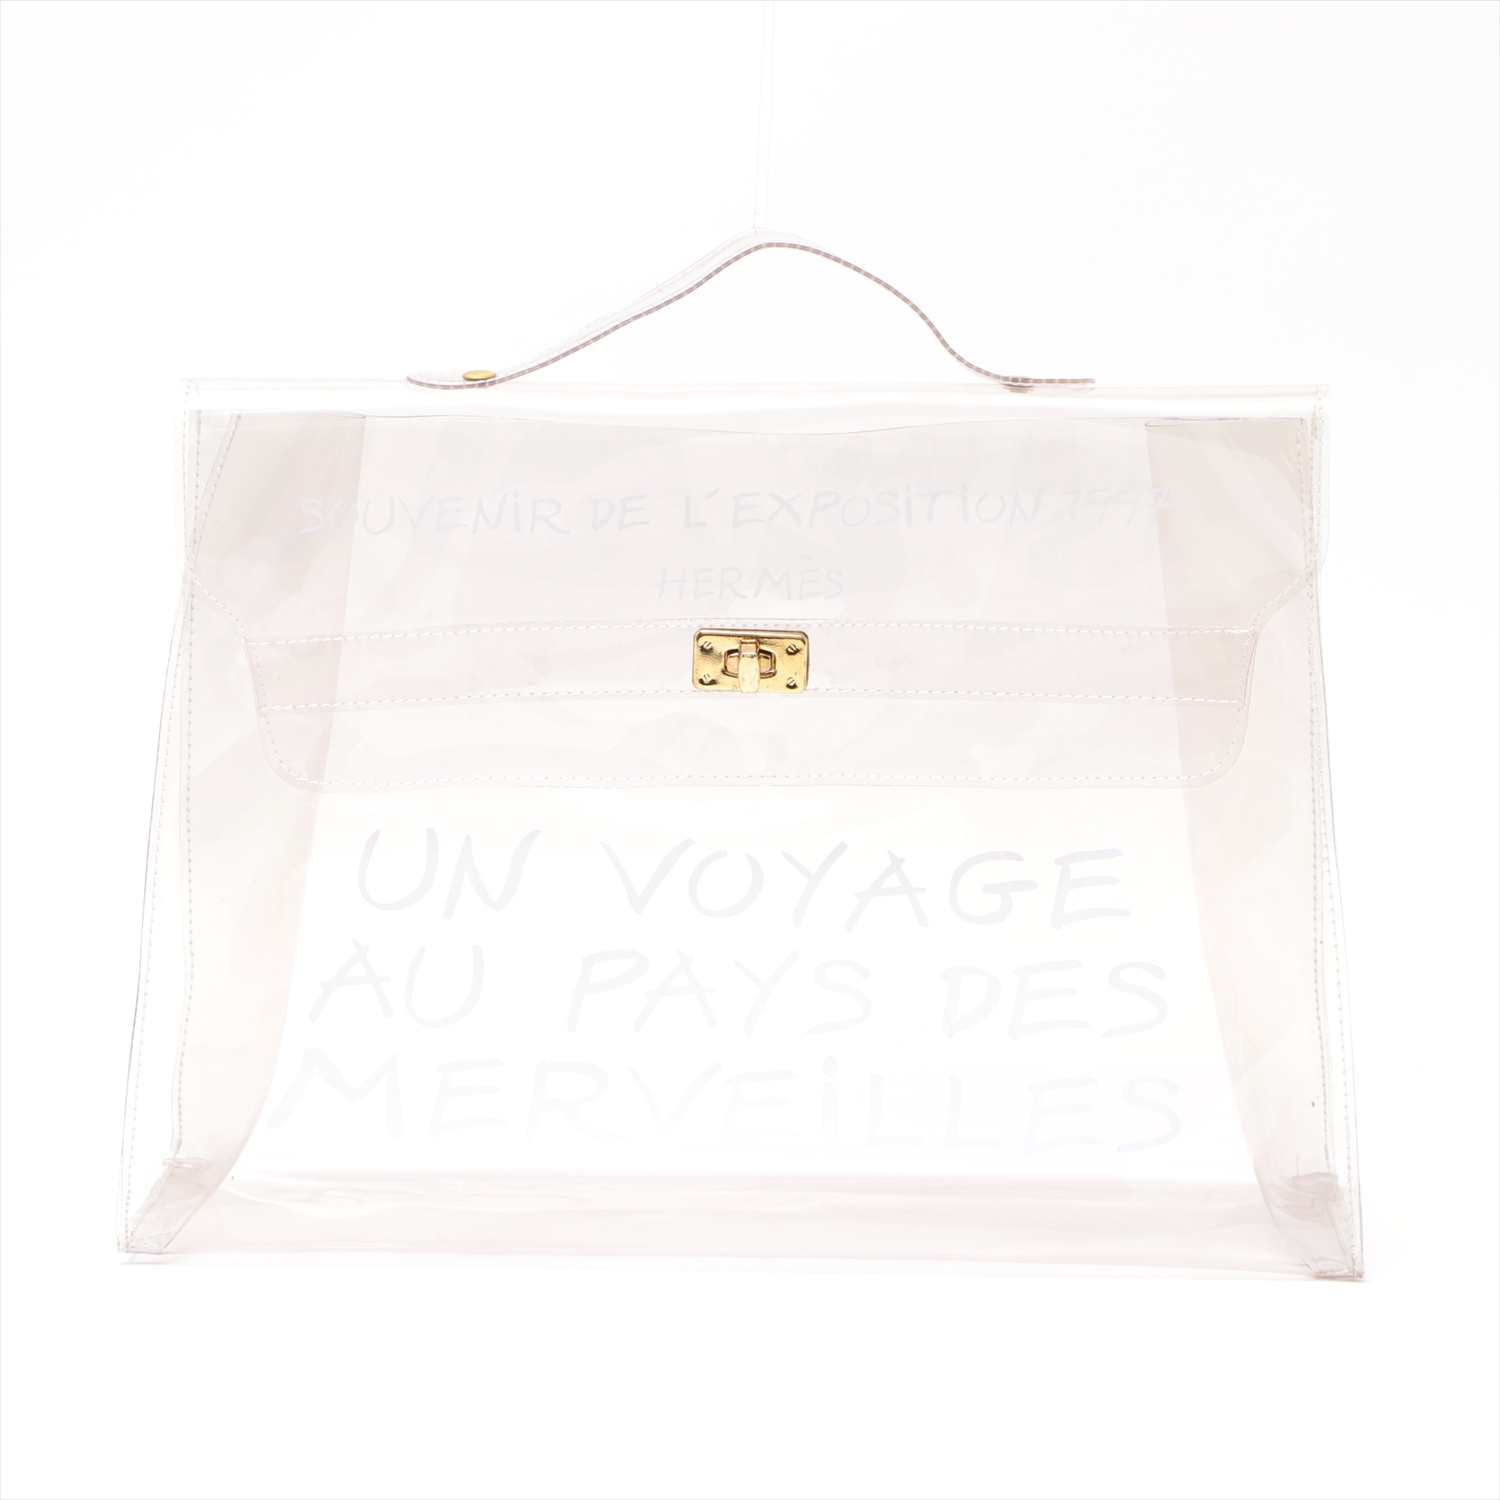 [Used goods] Hermes vinyl Kelly vinyl clear Gold Hardware